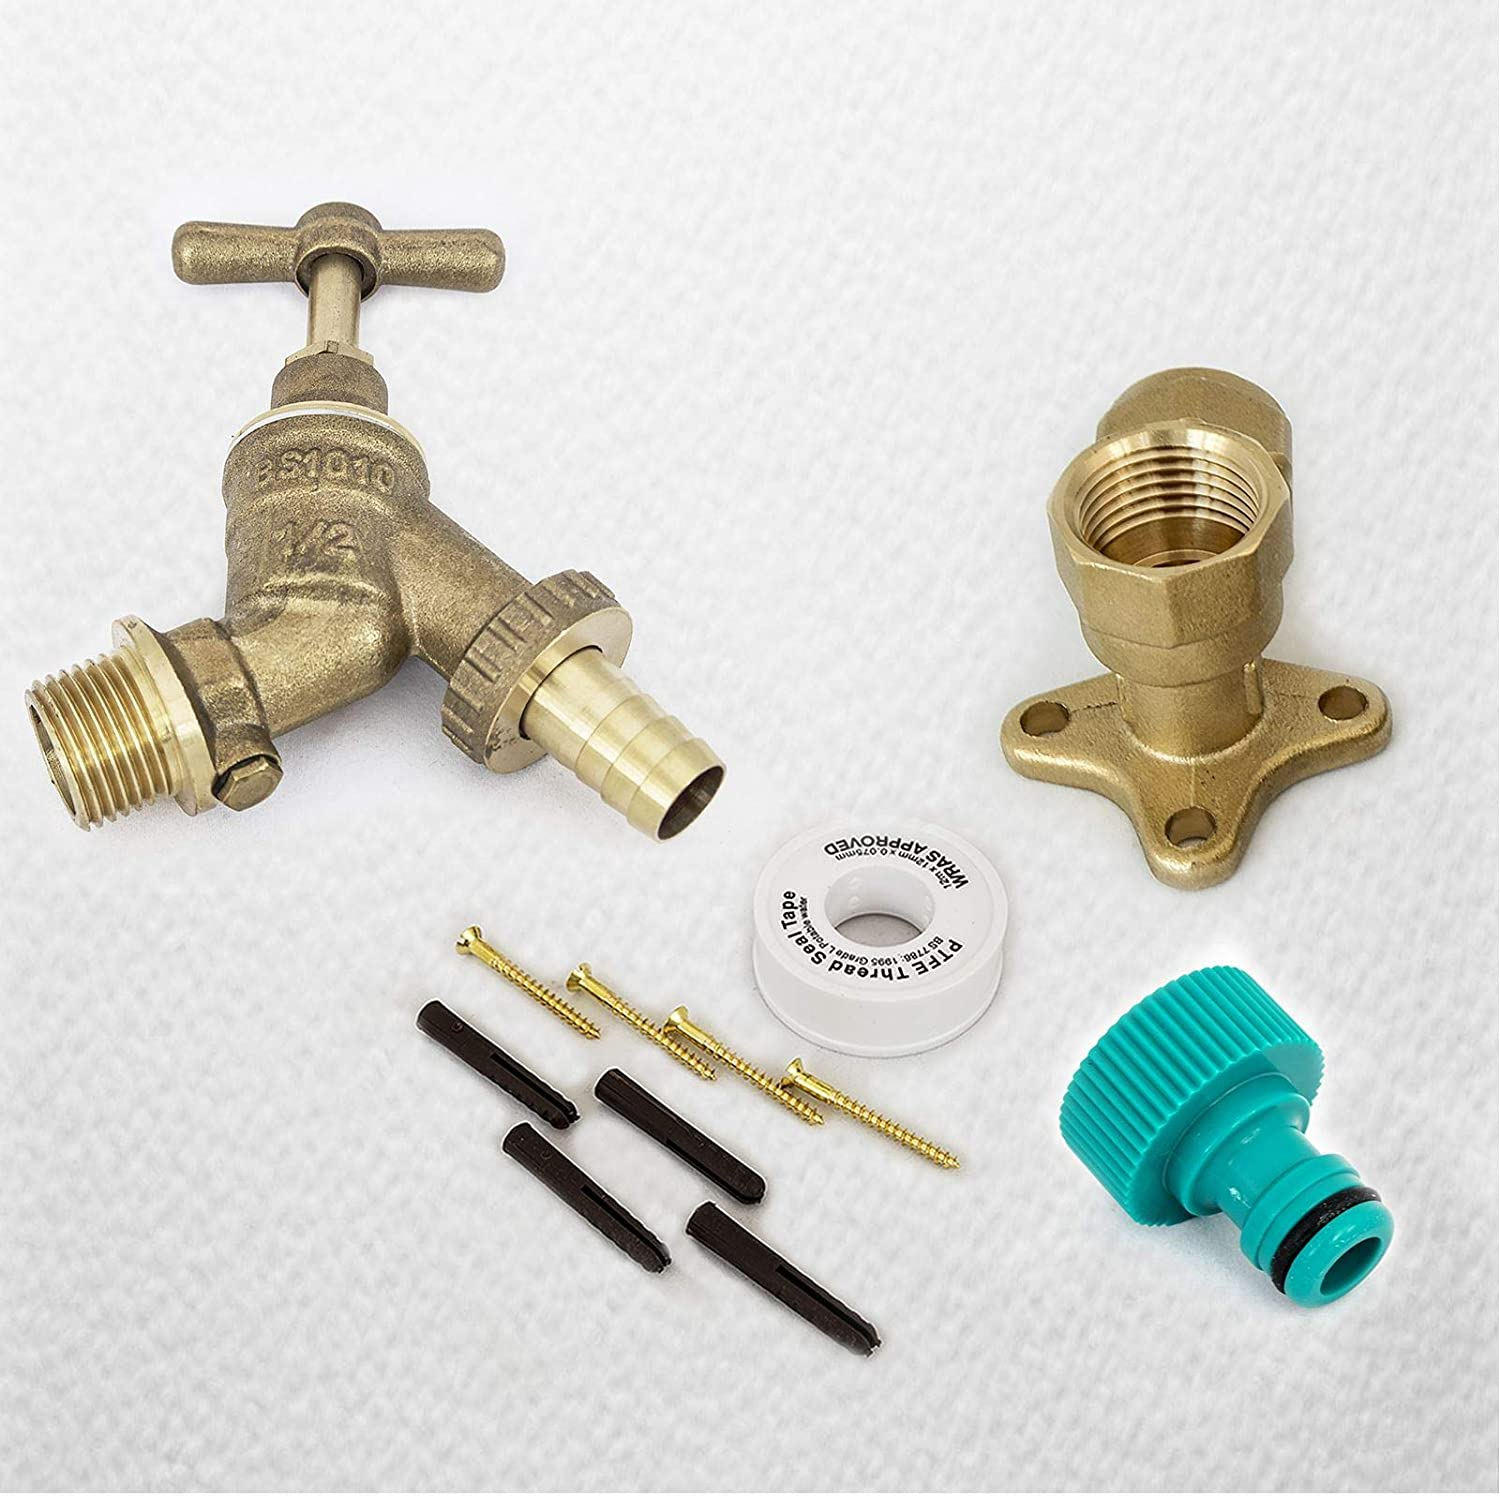 TWIN pack outer Threaded Brass Tap Hose pipe fitting Screws INTO your tap